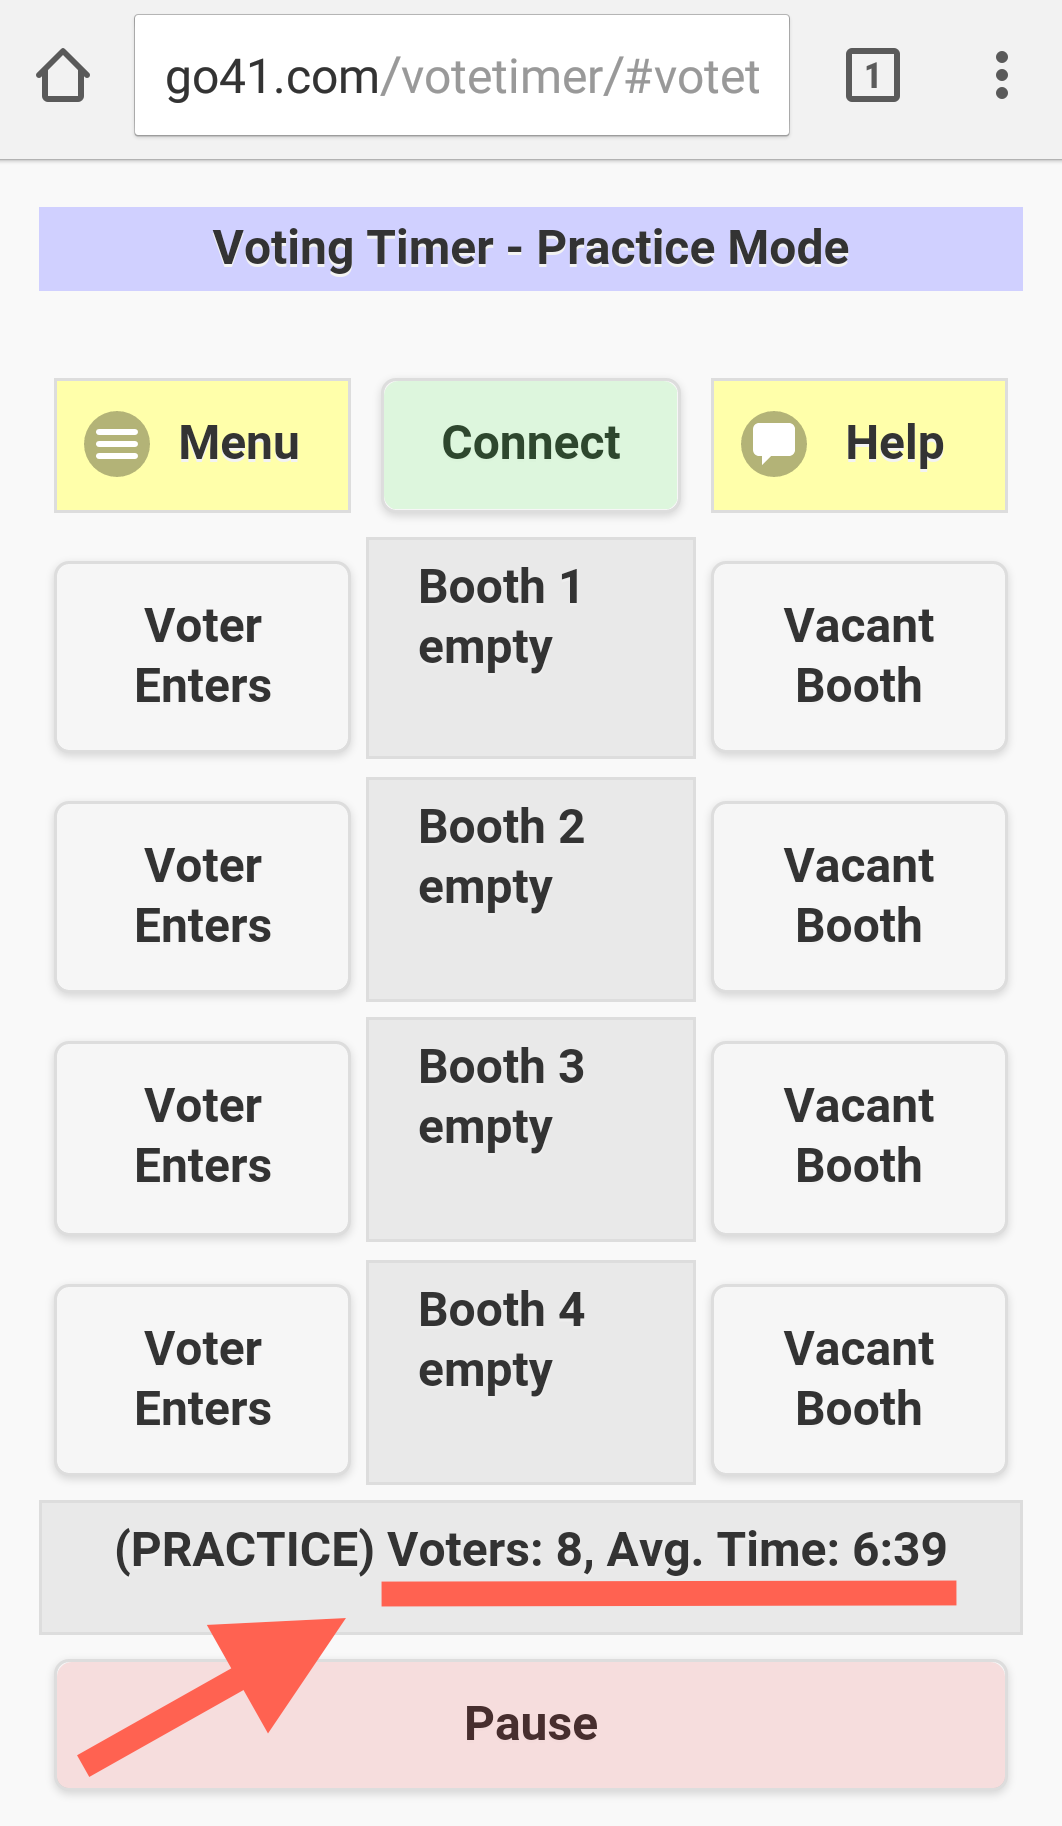 Timer shows 8 voters had an average wait of 6 minutes 39 seconds